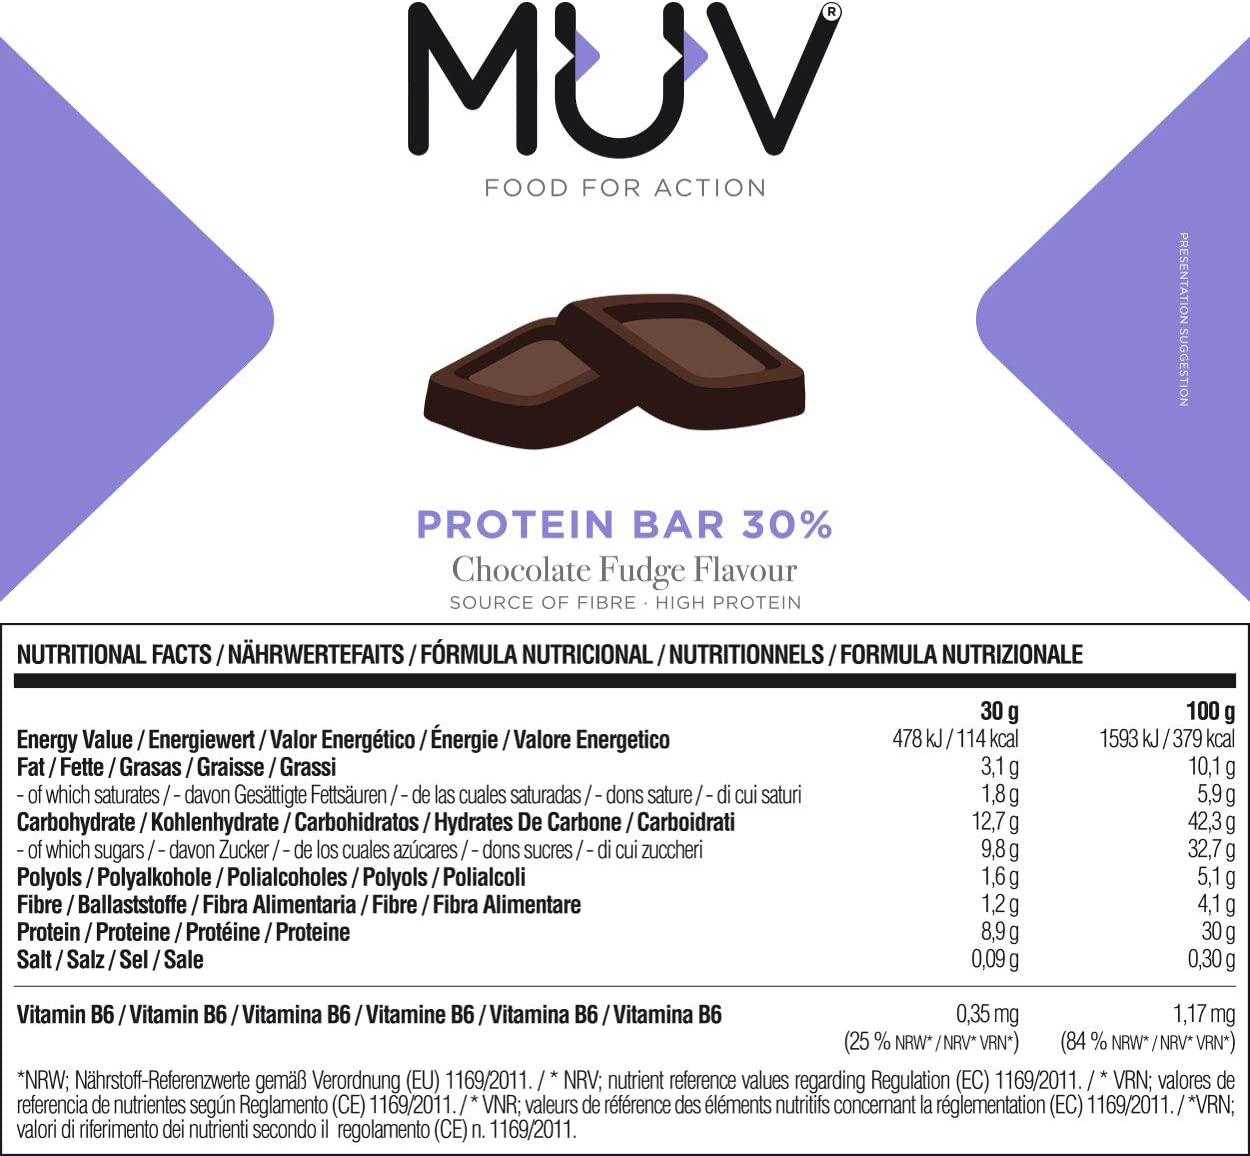 Muv-Food-For-Action-Protein-Bar-Chocolate-Fudge-Flavour-12-x-30-g thumbnail 5